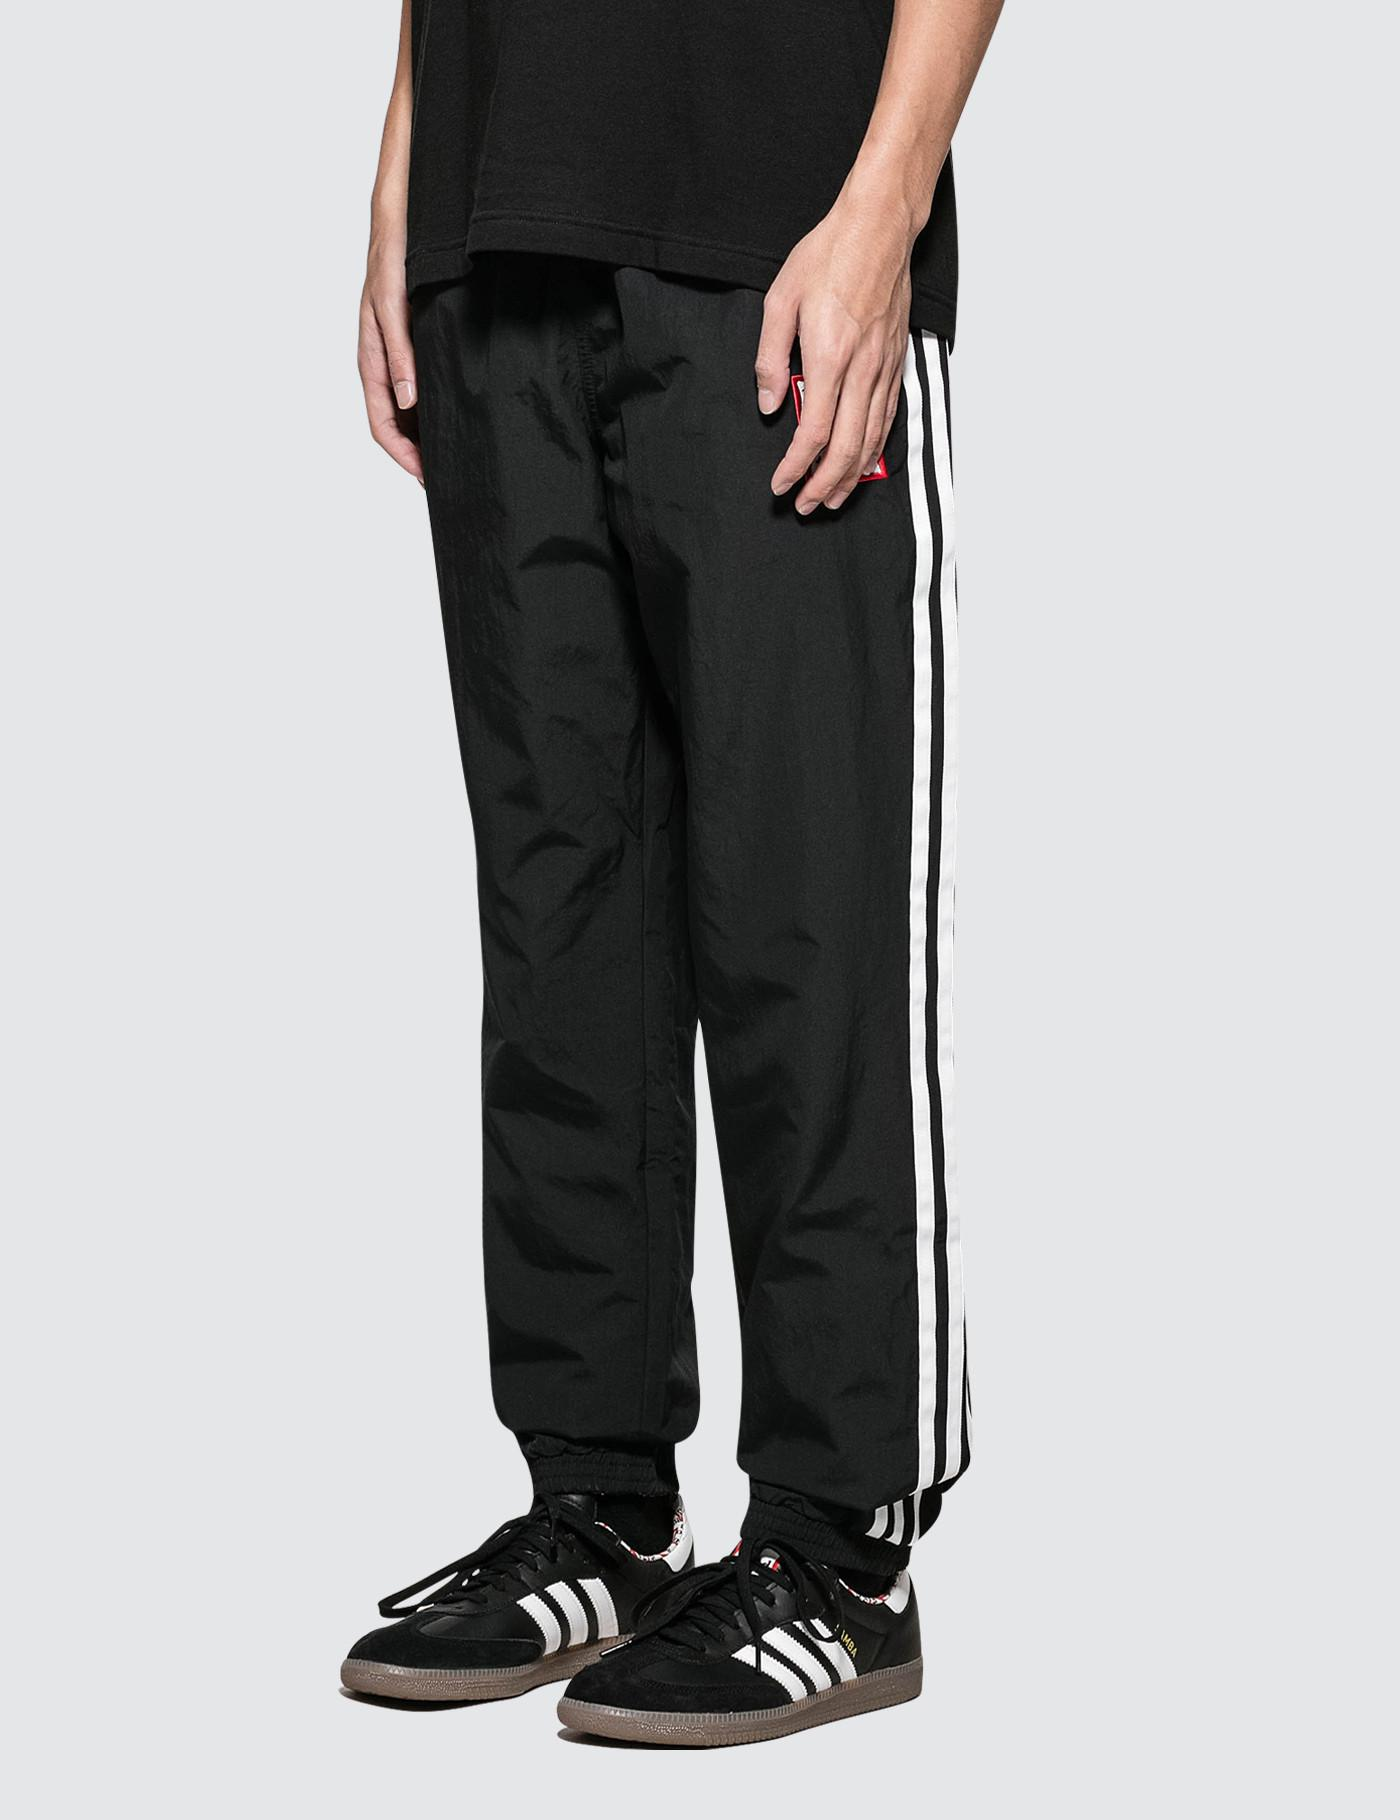 cf0149120b4 adidas Originals Have A Good Time X Adidas Reversible Track Pants in ...